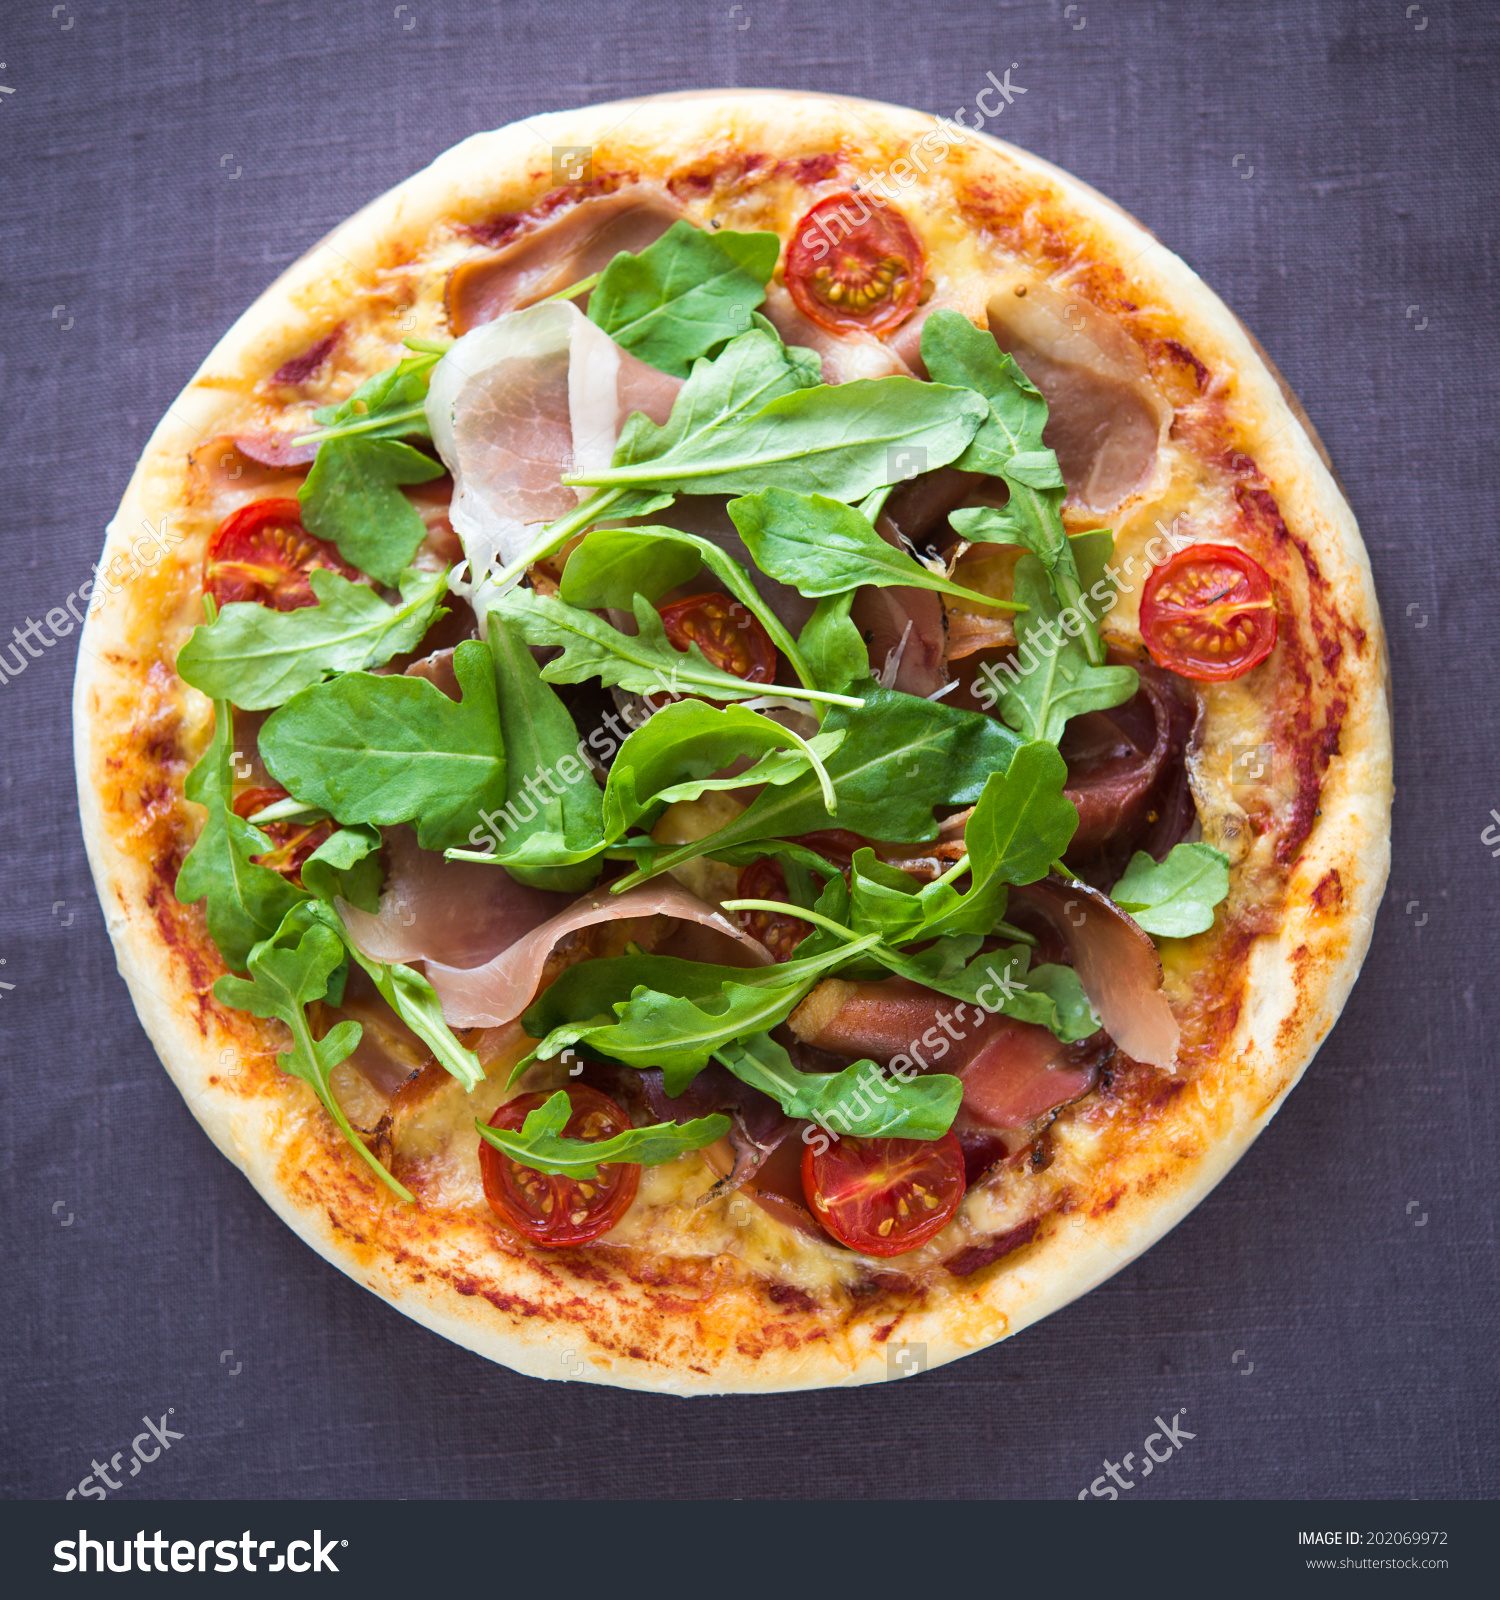 Pizza Prosciutto Arugula Salad Rocket Top Stock Photo 202069972.